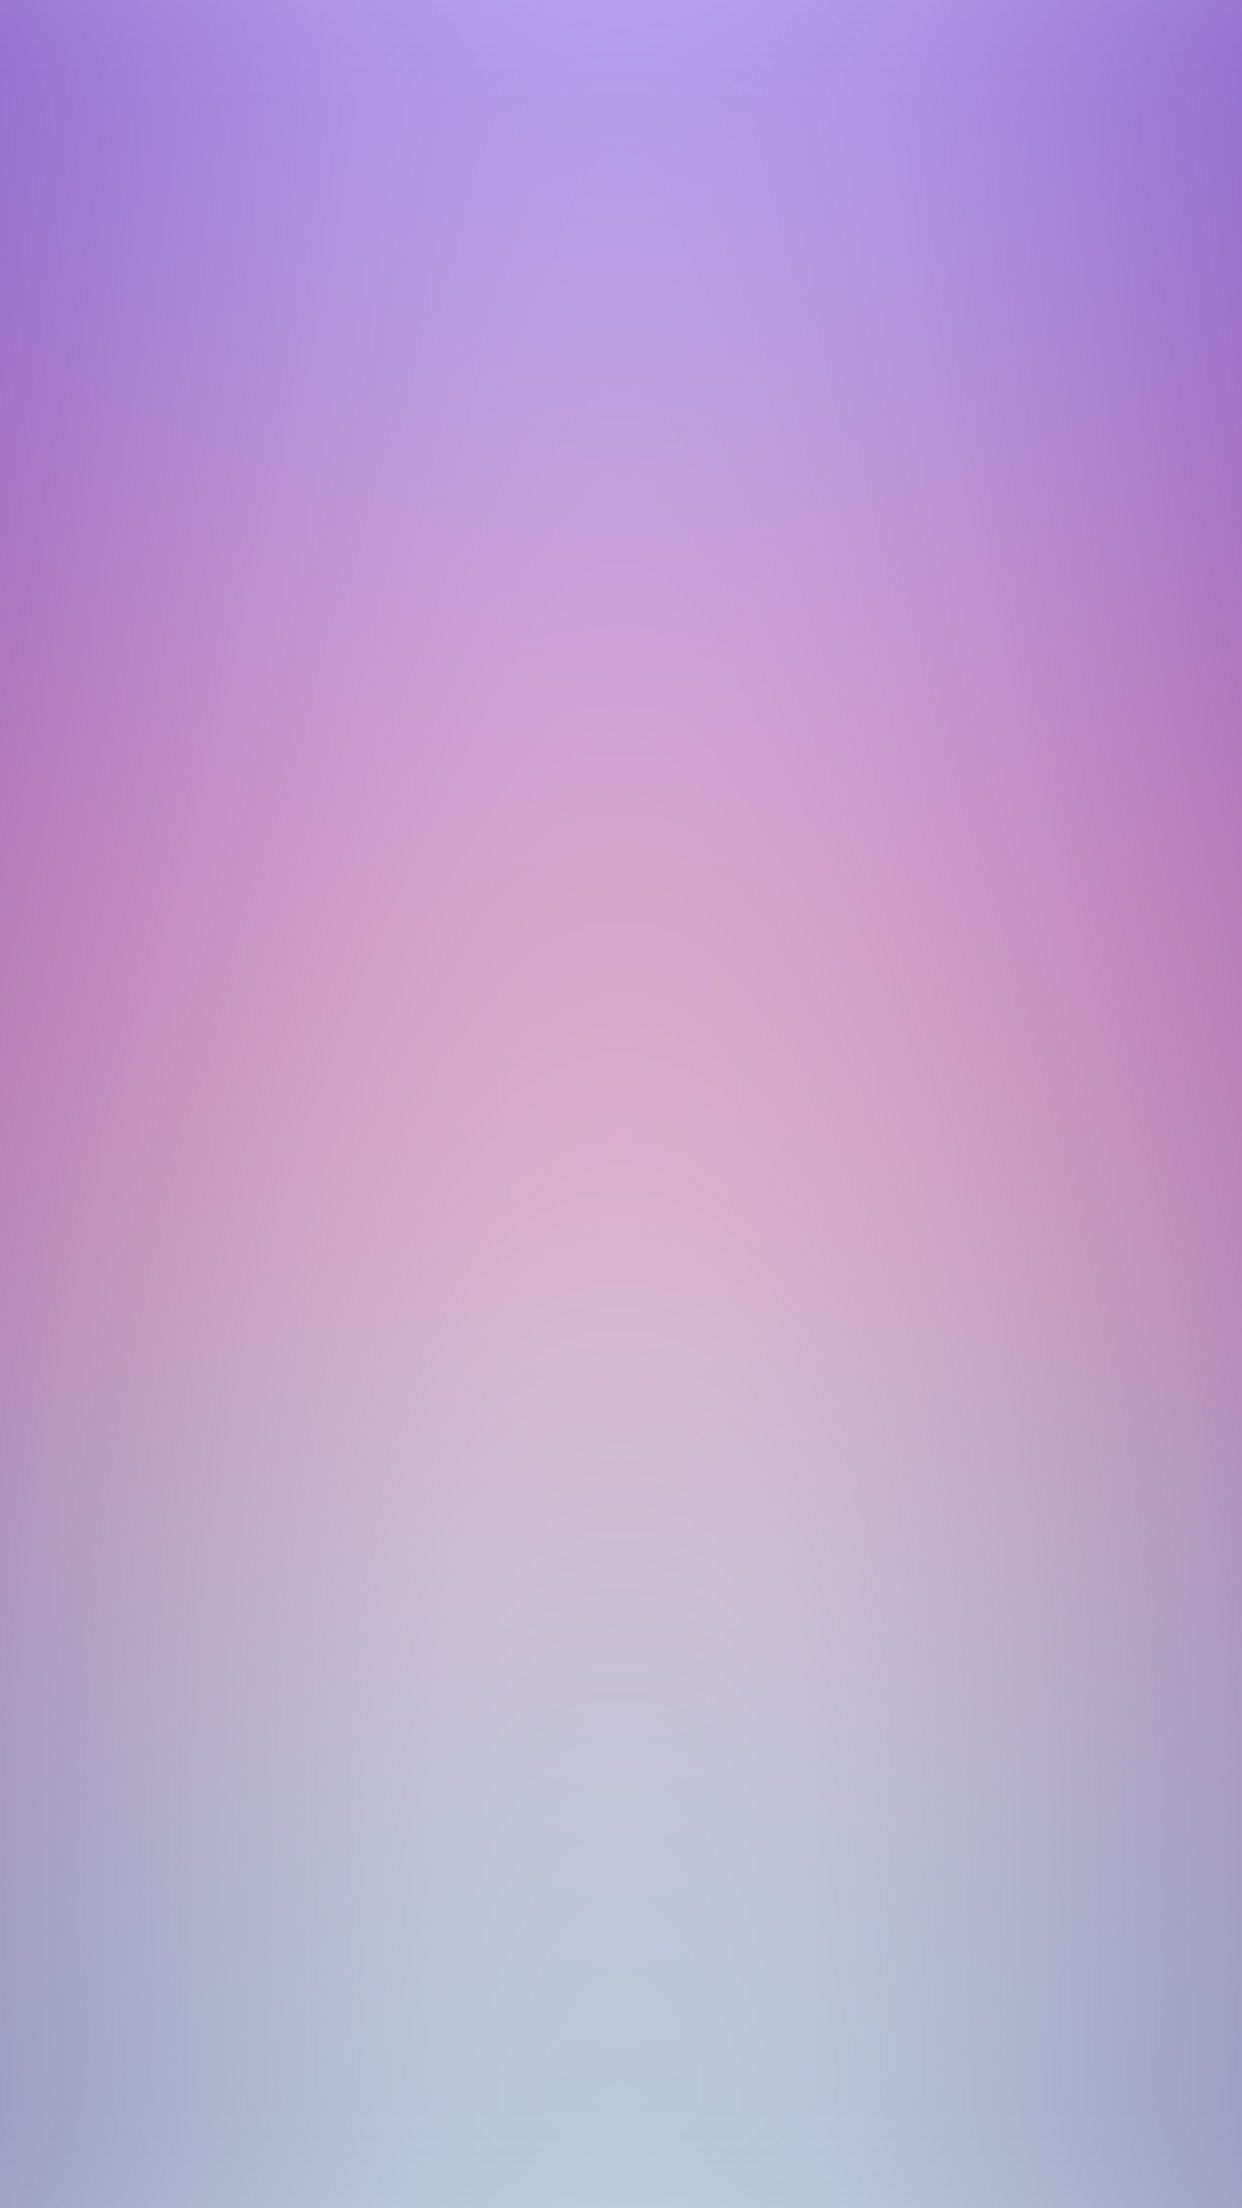 Purple Iphone Wallpapers Top Free Purple Iphone Backgrounds Wallpaperaccess